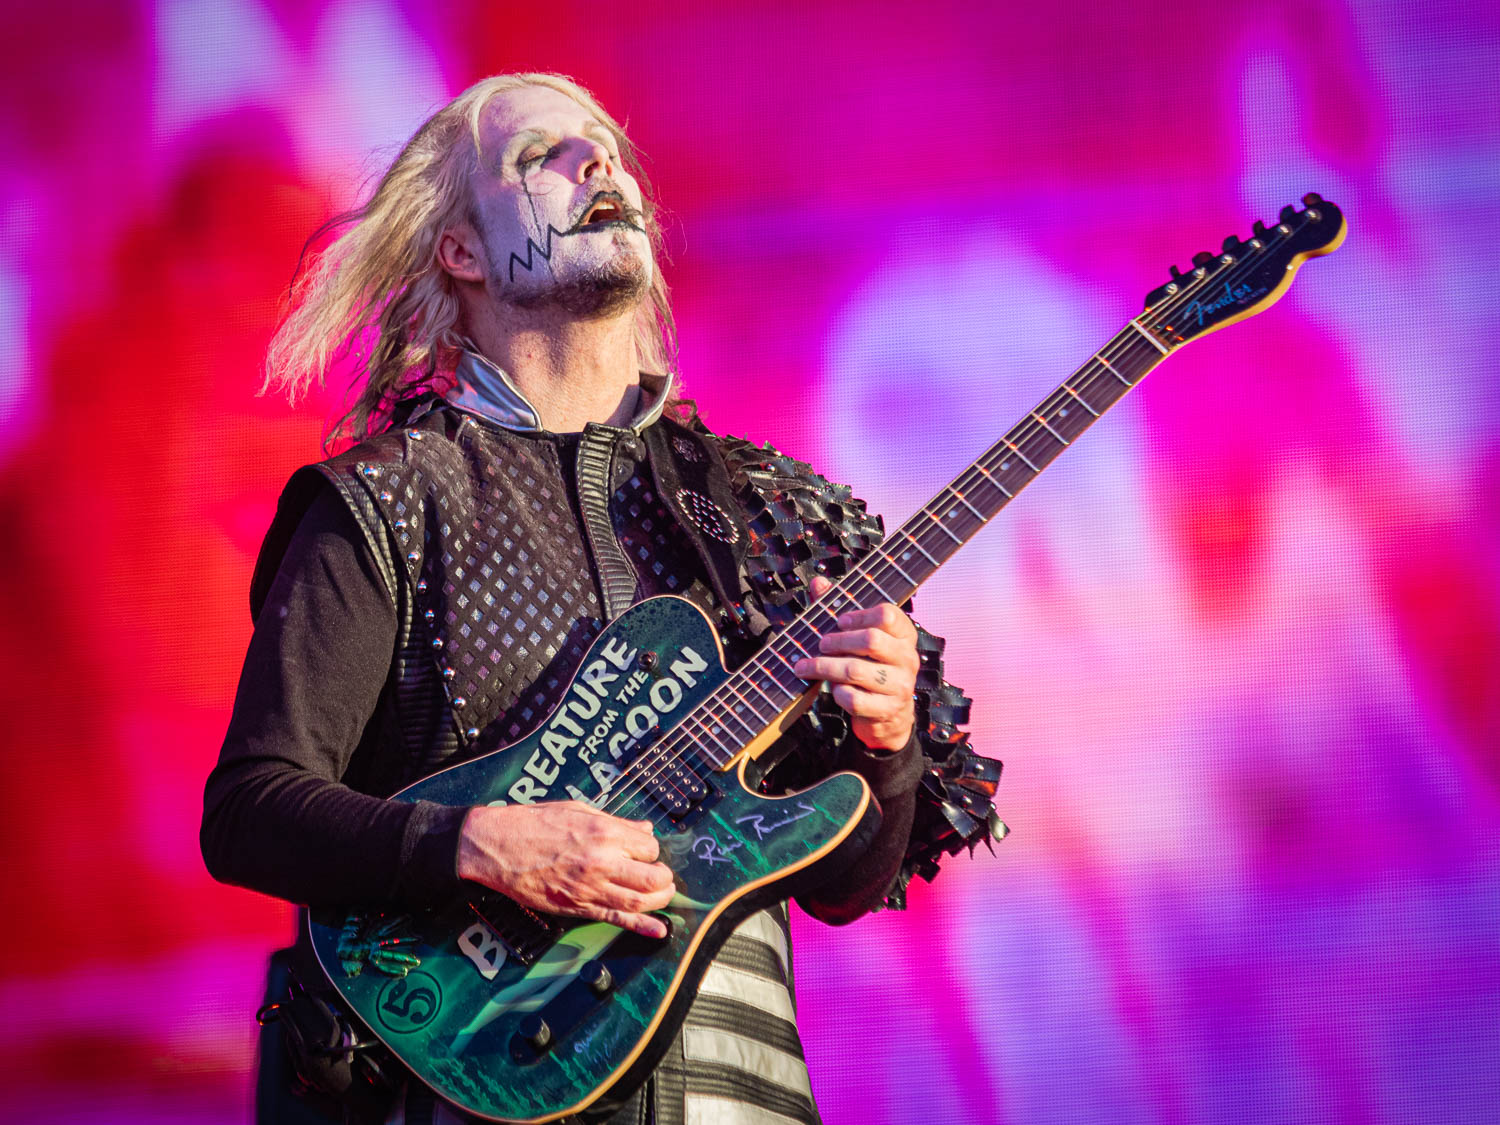 Rob Zombie live on stage at the 2019 Copenhell Metal Festivall - here John5 on guitar